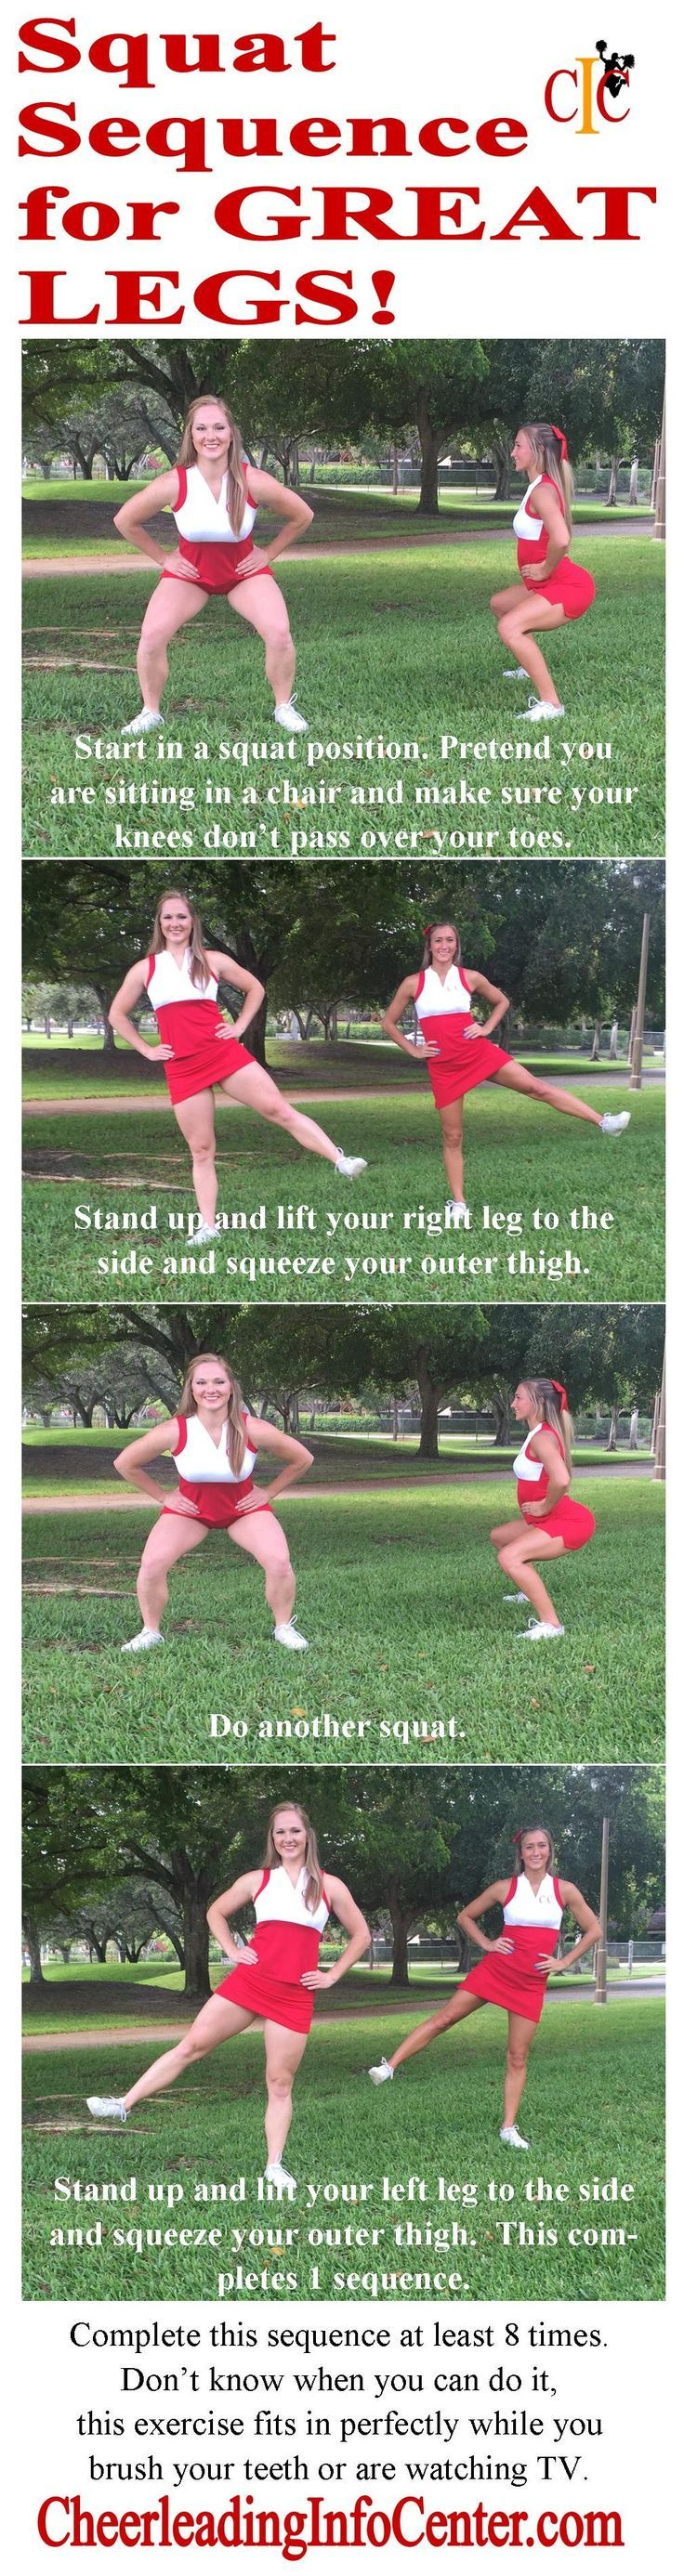 Do you want some great exercises for your legs? Check out this squat sequence that you can do while watching TV or brushing your teeth! For more great cheerleading tips, check out http://CheerleadingInfoCenter.com